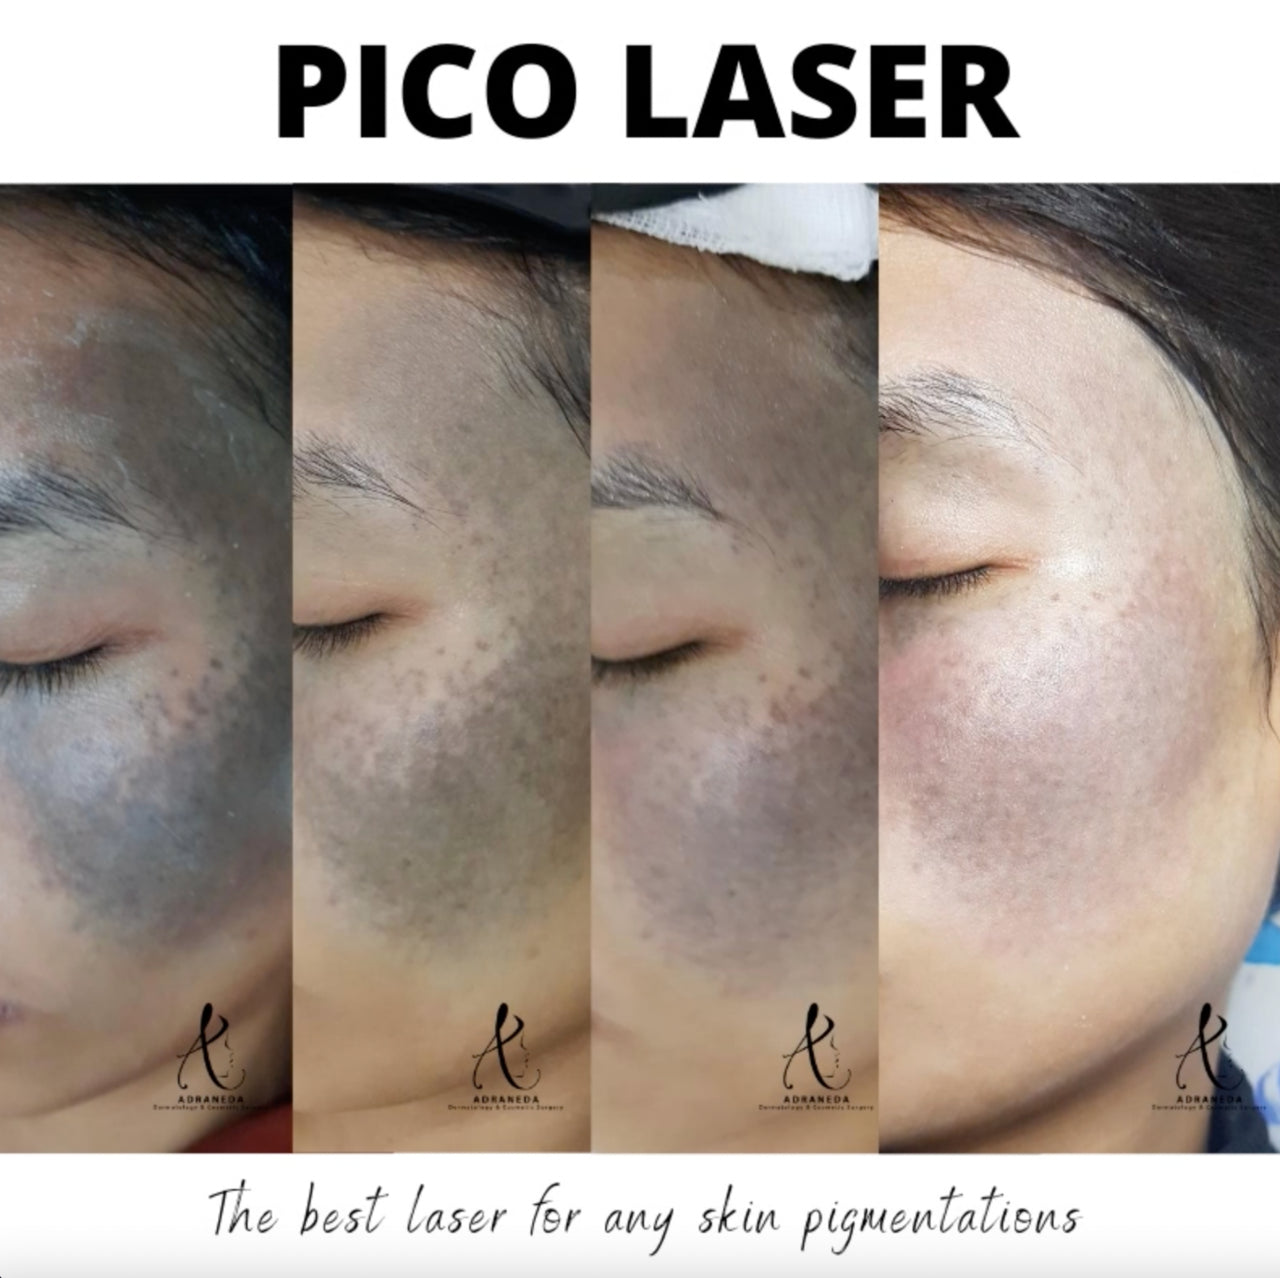 Pico laser, qs ndyag laser, freckles, melasma treatment, tattoo removal, birthmark removal, mole removal, acne marks, leg scars treatment